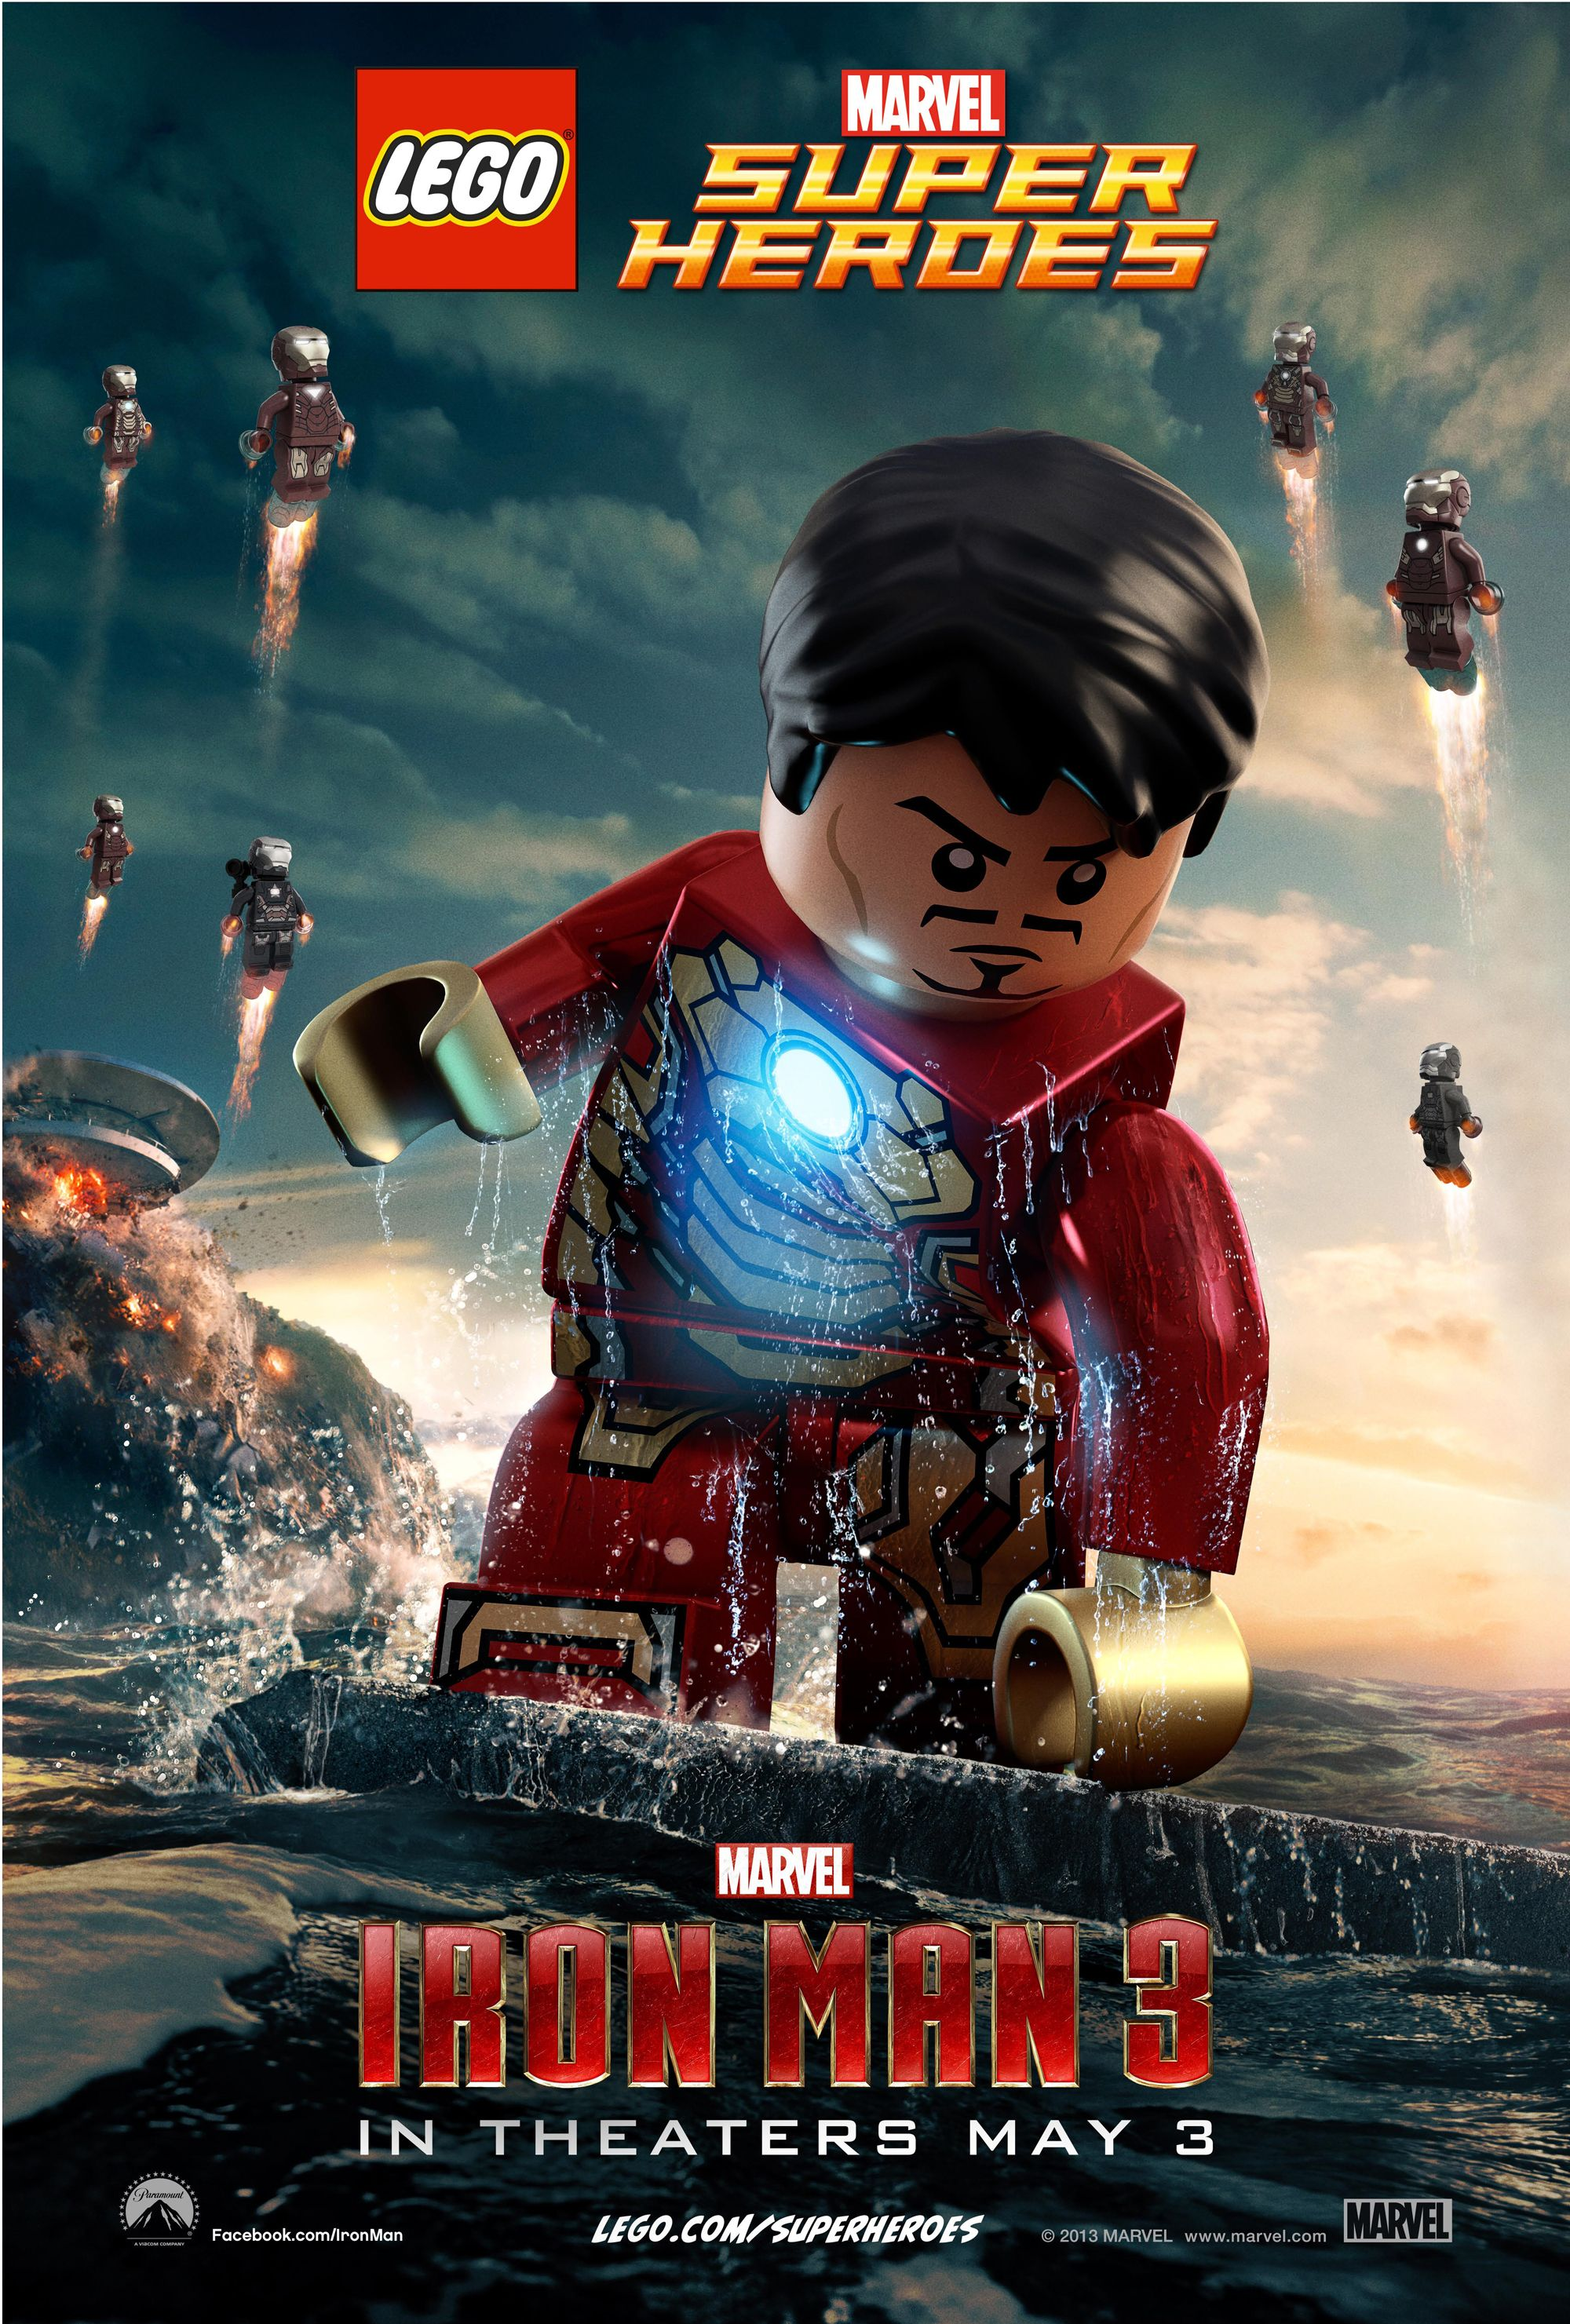 Iron man 3 lego posters iron man 3 stars robert downey jr for 3 by 3 prints